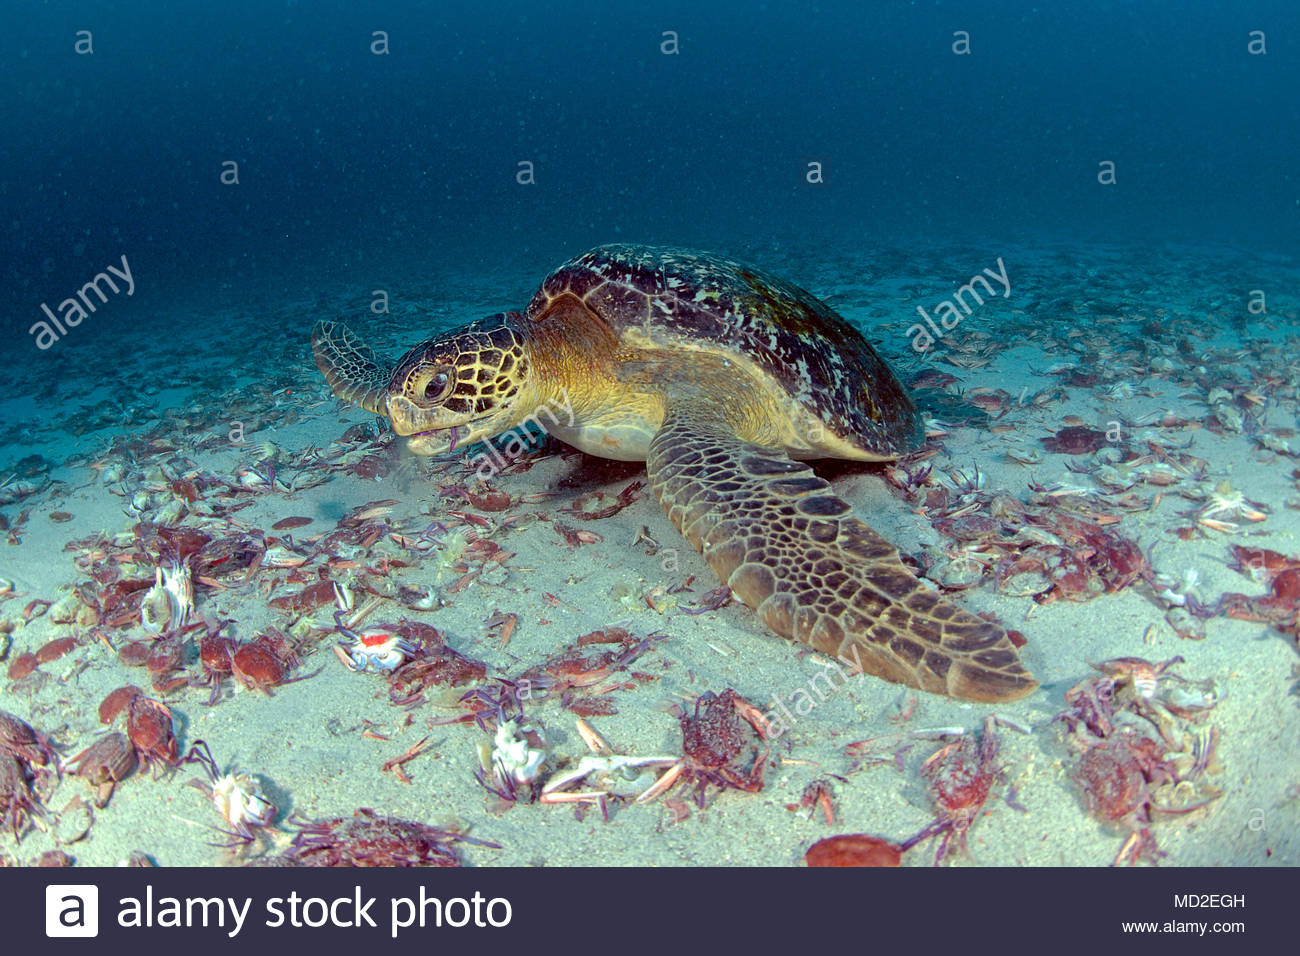 Green sea turtle (Chelonia mydas) eating Long-eyed Swimming Crab (Podophthalmus nacreus) which died after egg deposition, Cocos Island, Costa Rica - Stock Image